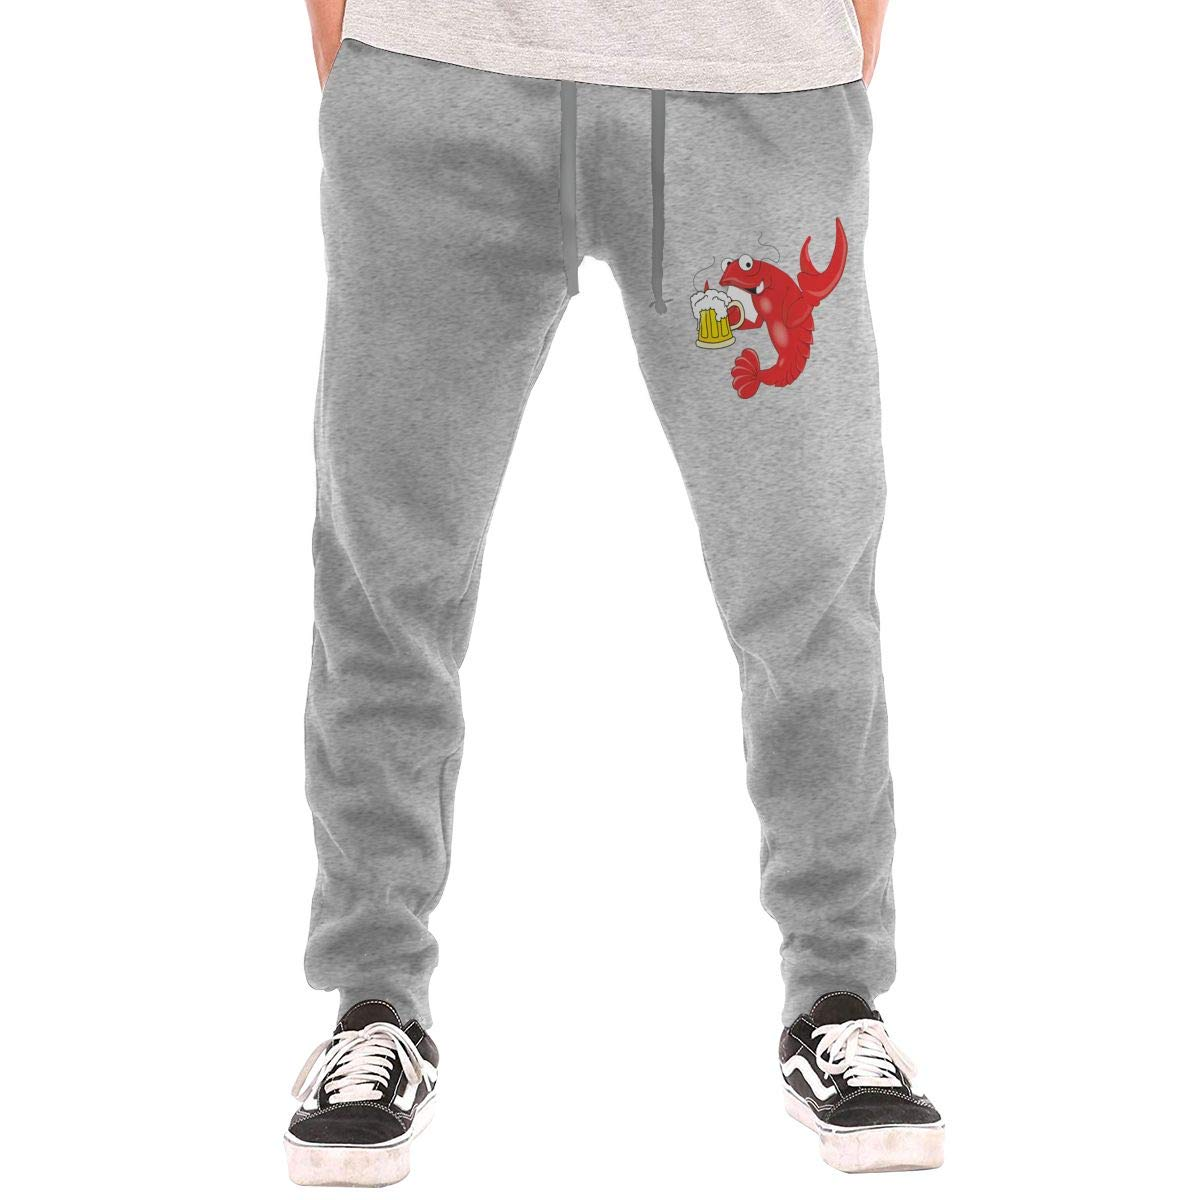 Numik Crawfish Beer Drawstring Waist,100/% Cotton,Elastic Waist Cuffed,Jogger Sweatpants